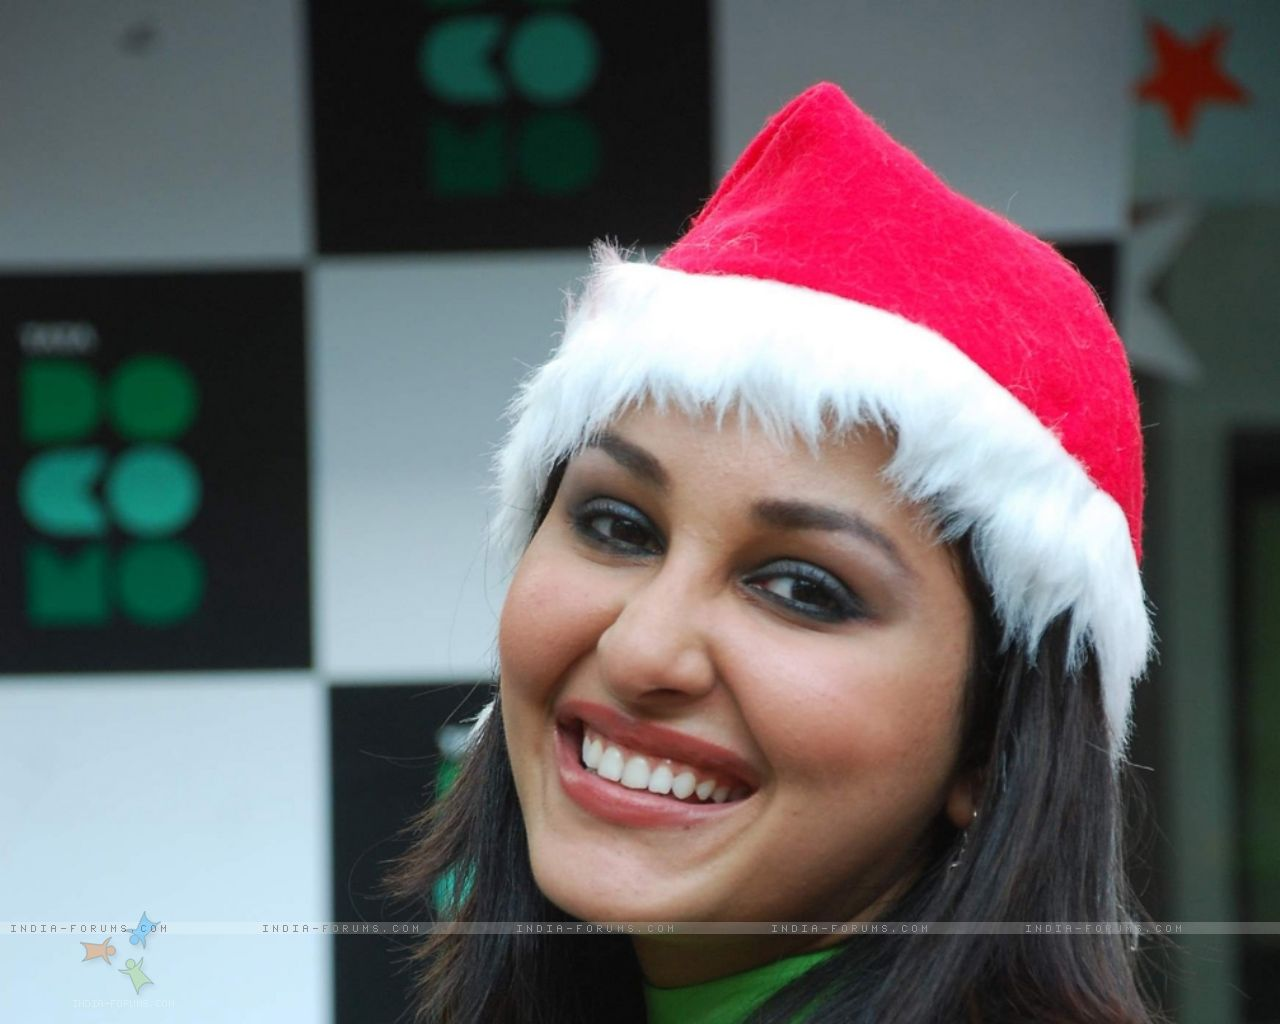 Pooja Chopra Wallpaper Pooja Chopra hd Wallpapers